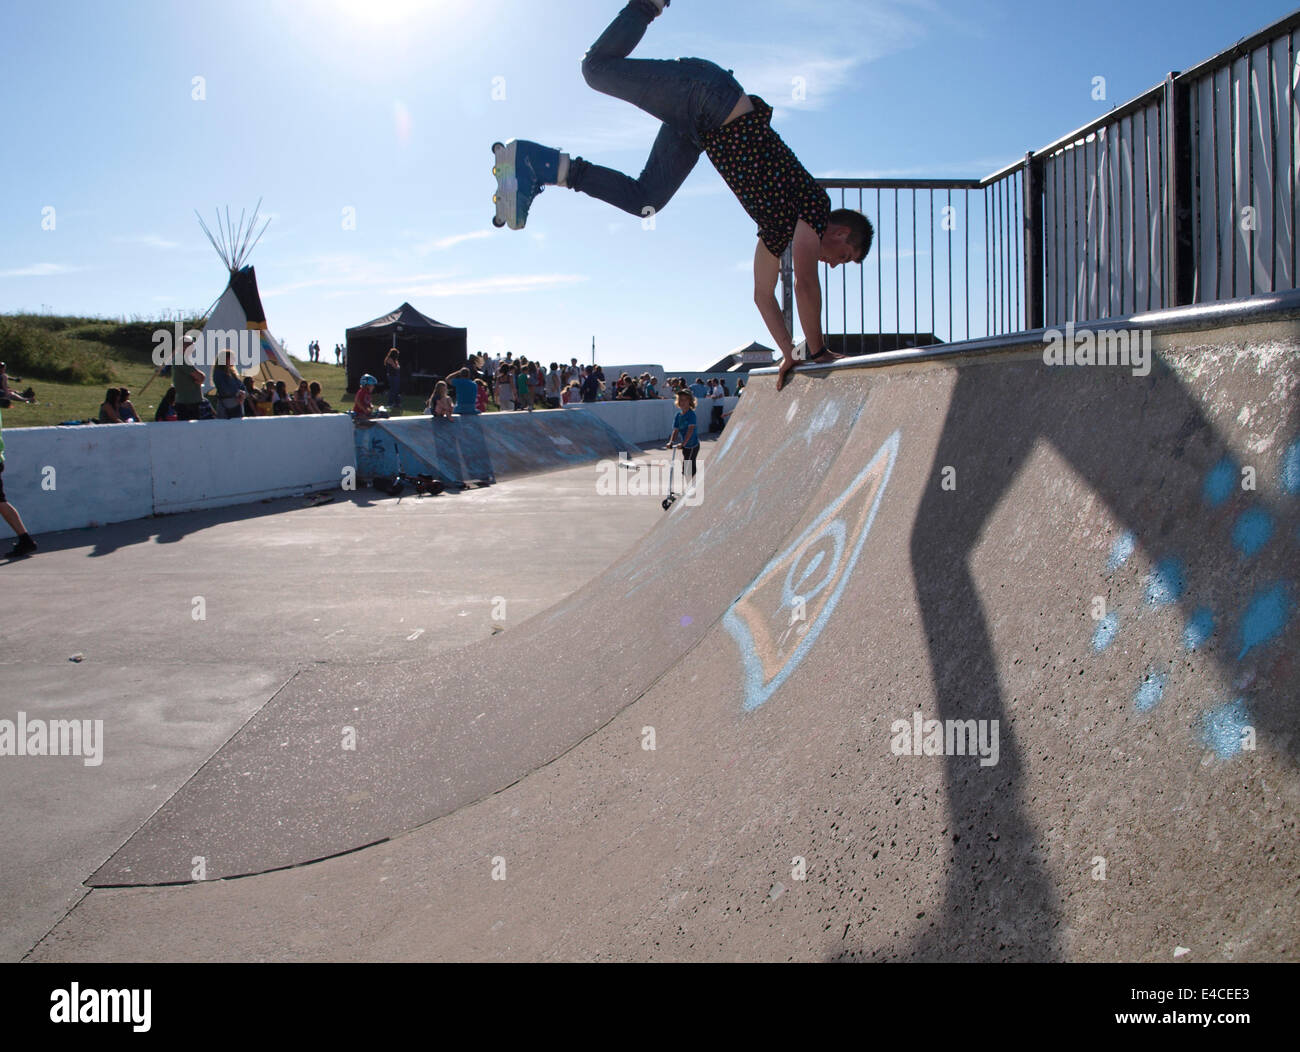 Teenager with inline skates on a half-pipe at Bude skatepark, Cornwall, UK - Stock Image